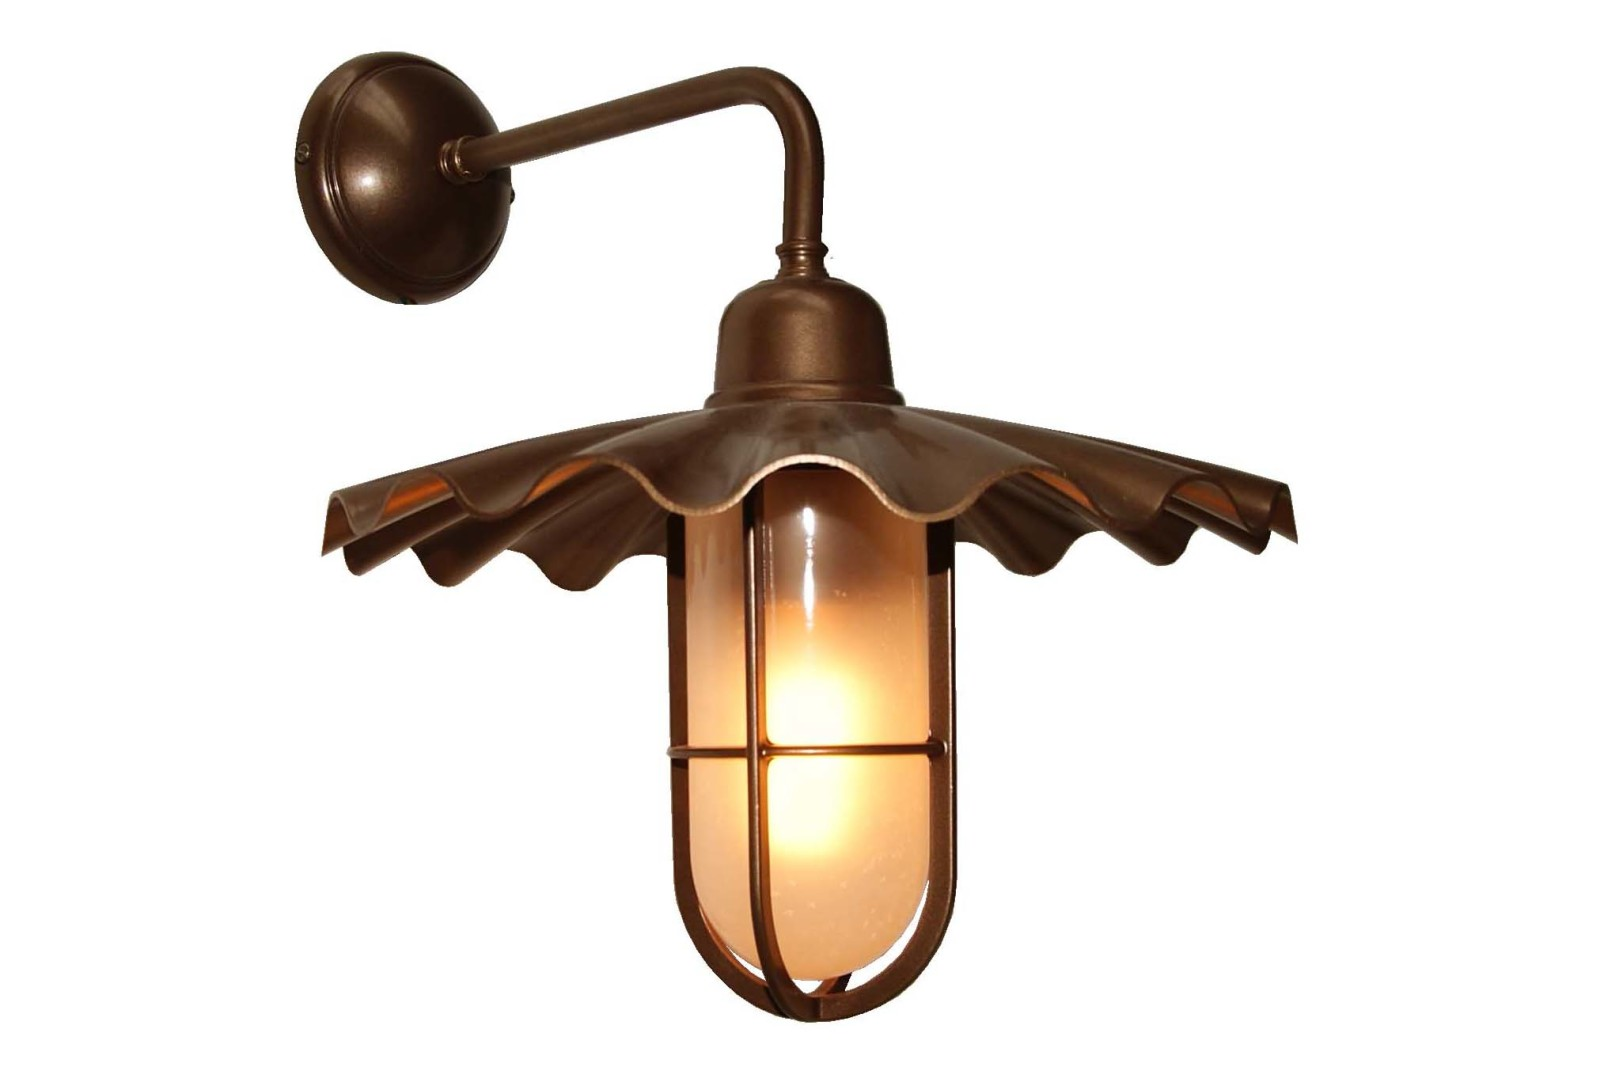 Ardle A Well Glass Wall Light Powder Coated Bronze, Frosted Glass